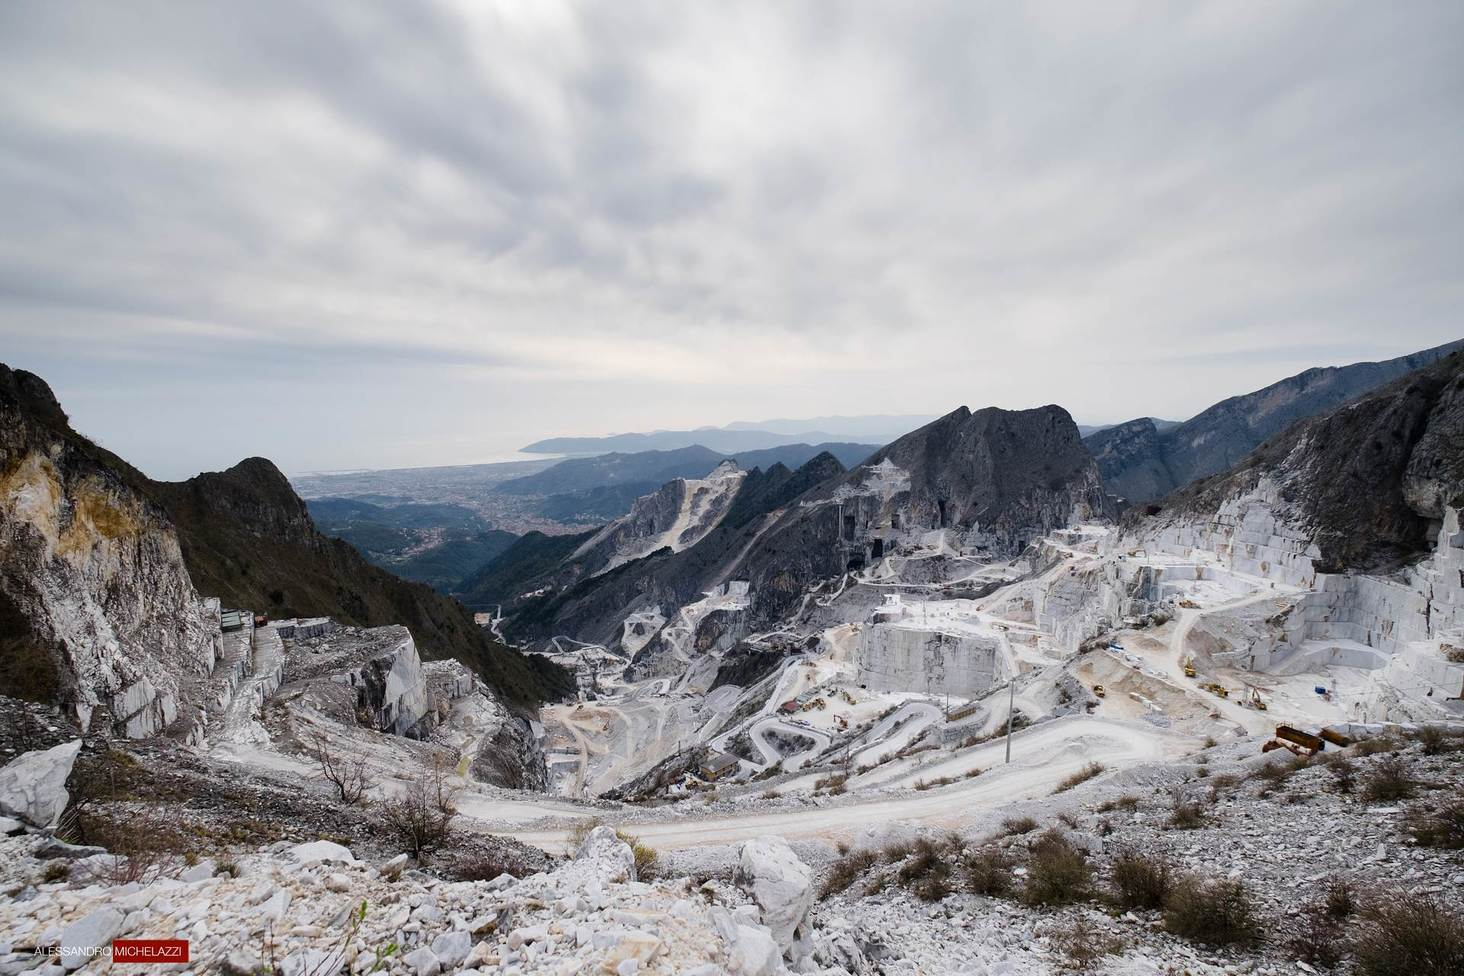 Carrara's marble quarries photographs, a look at the